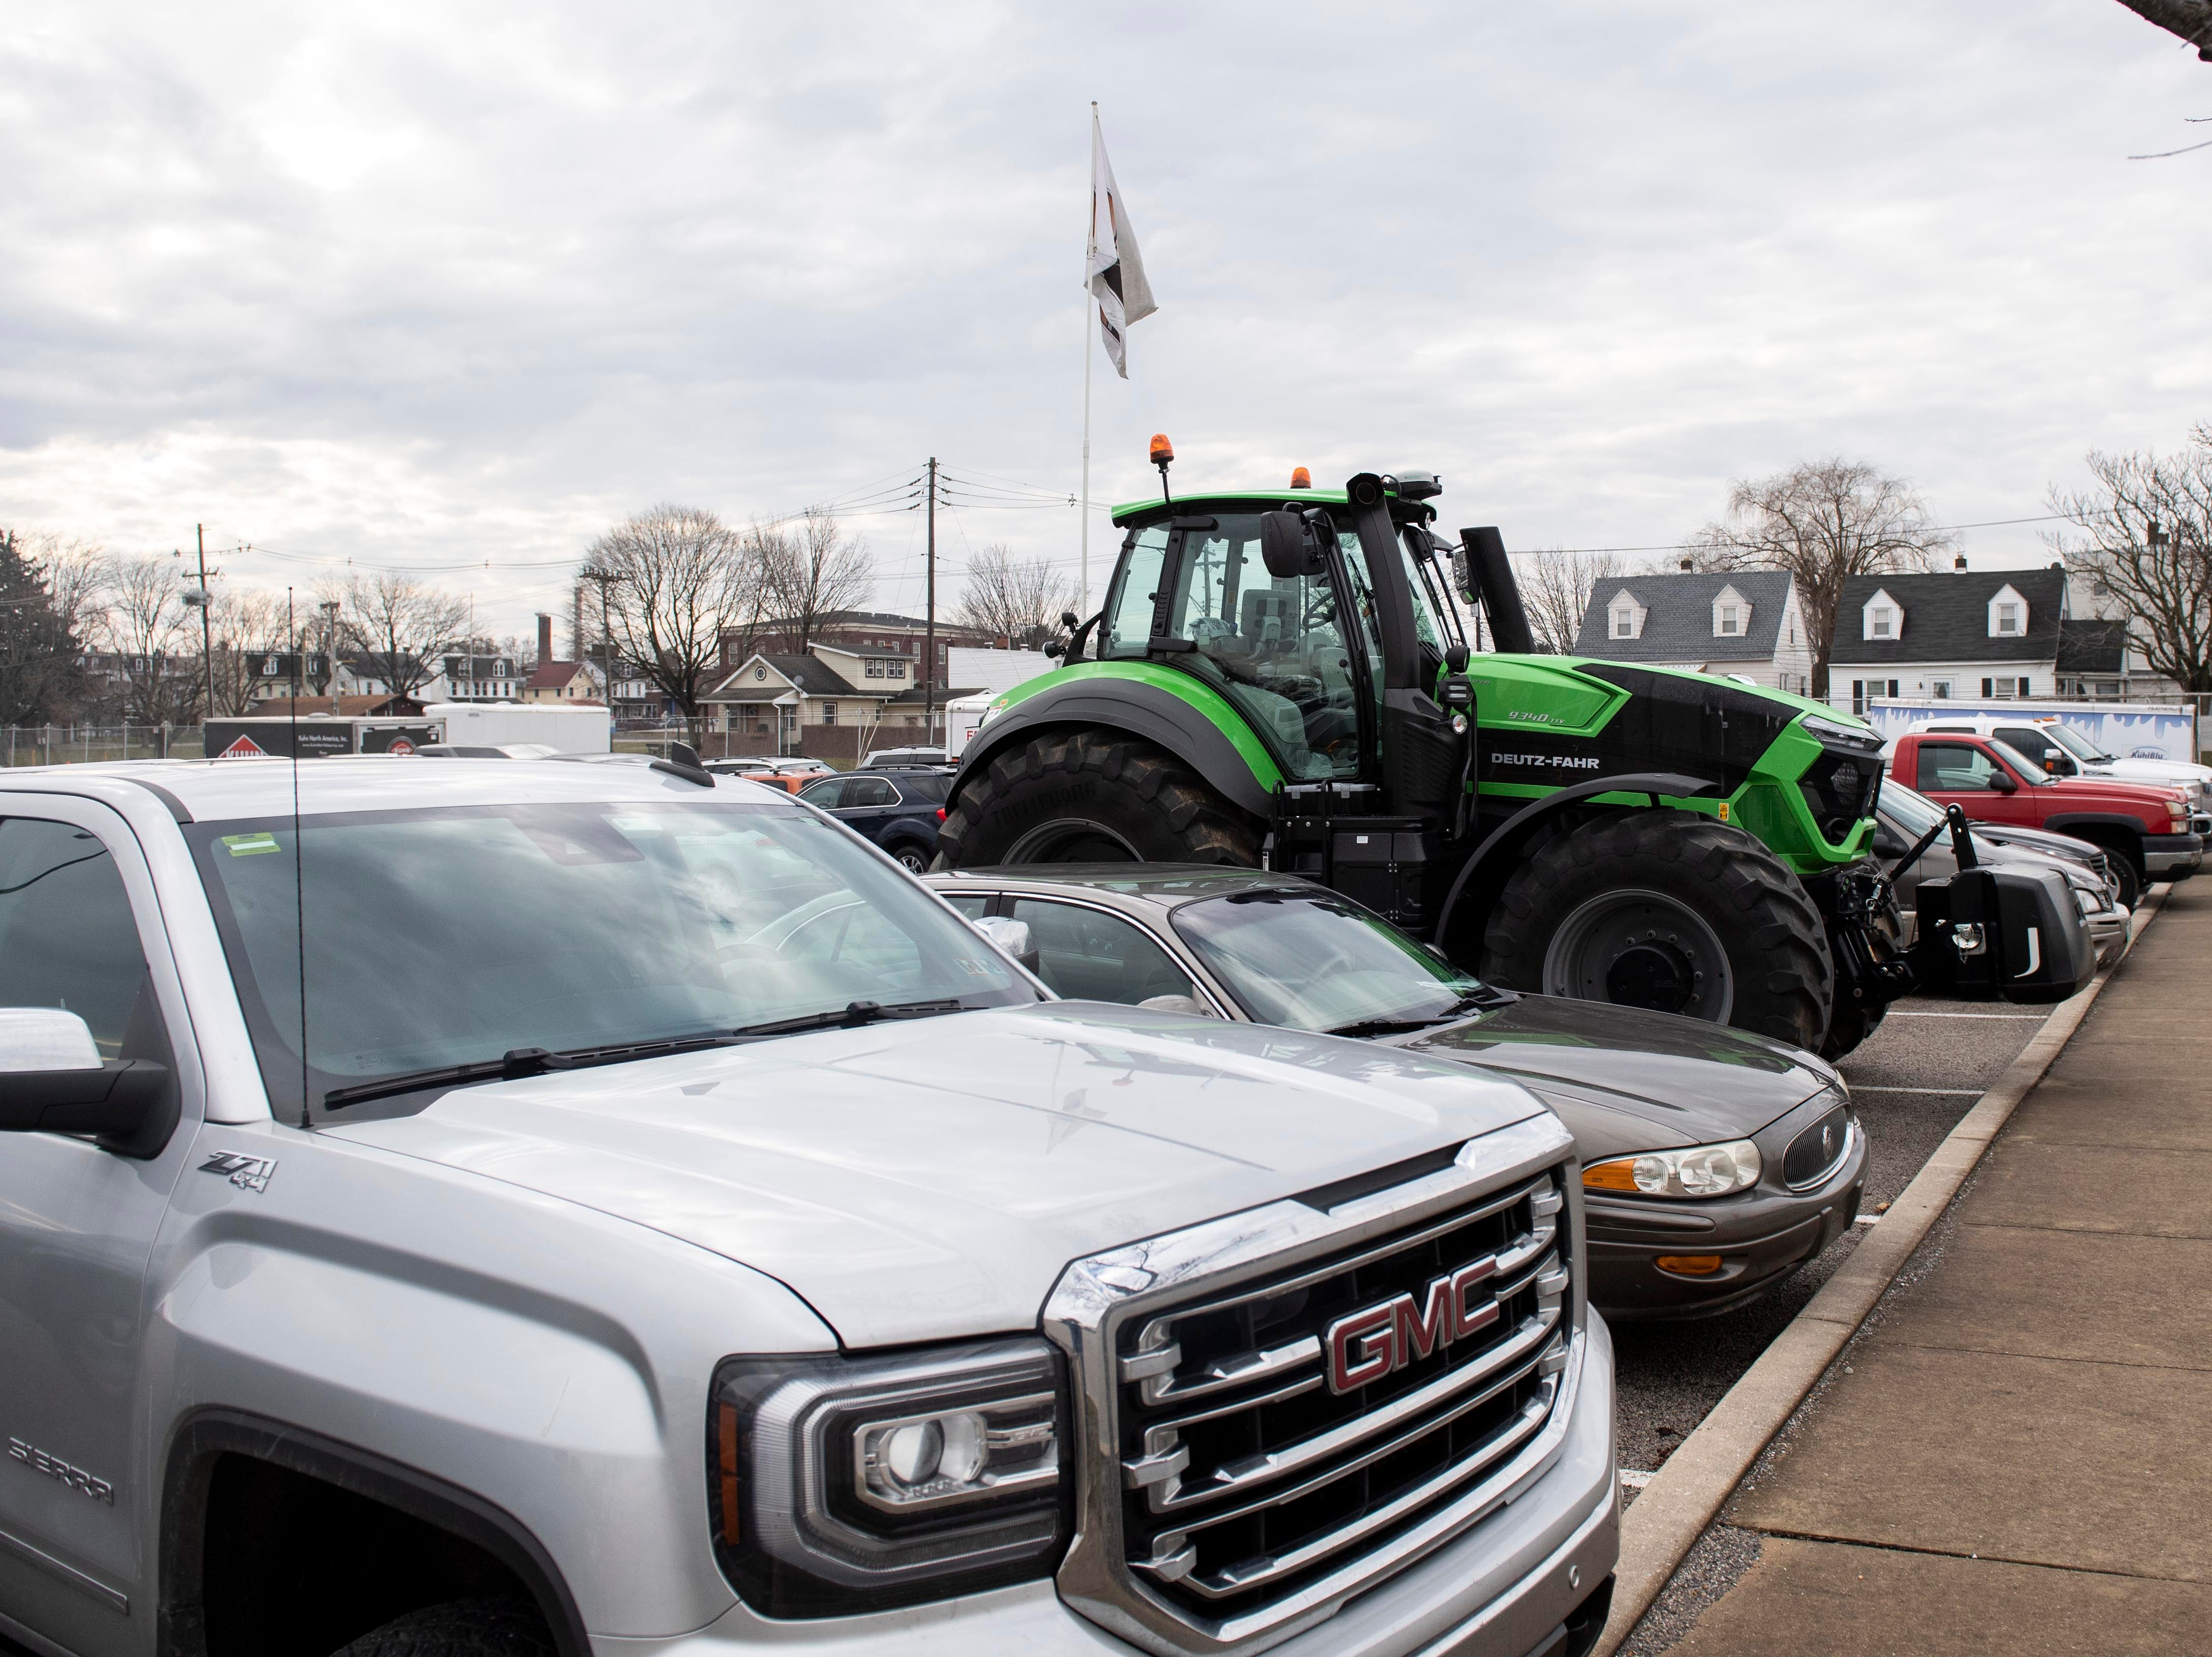 A tractor, seen for advertising, is parked among attendee parking at the Keystone Farm Show, Tuesday, Jan. 8, 2019. The Keystone Farm Show has nearly 420 vendors and is expected to bring up to 15,000 people to the York Expo Center. The show runs through Thursday, Jan. 10.